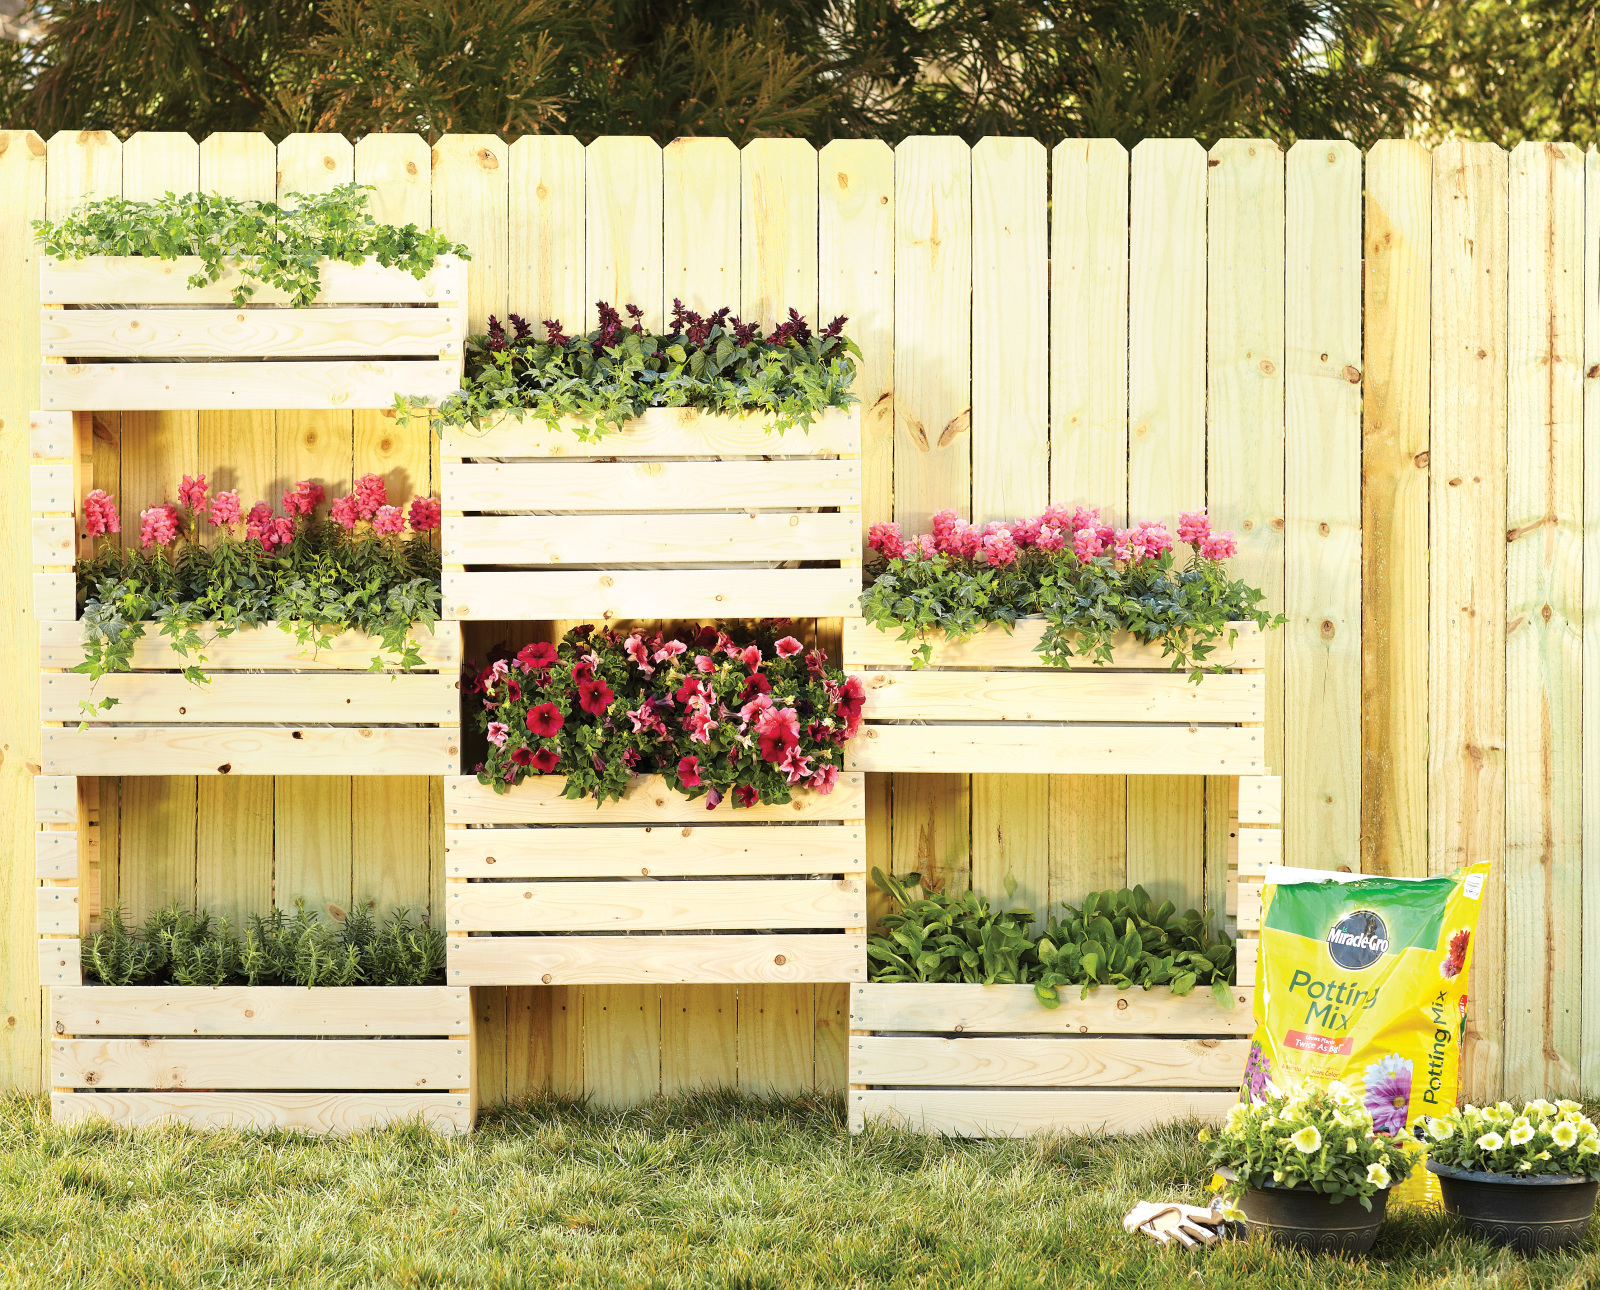 Vertical planter diy home depot garden project for Home vertical garden